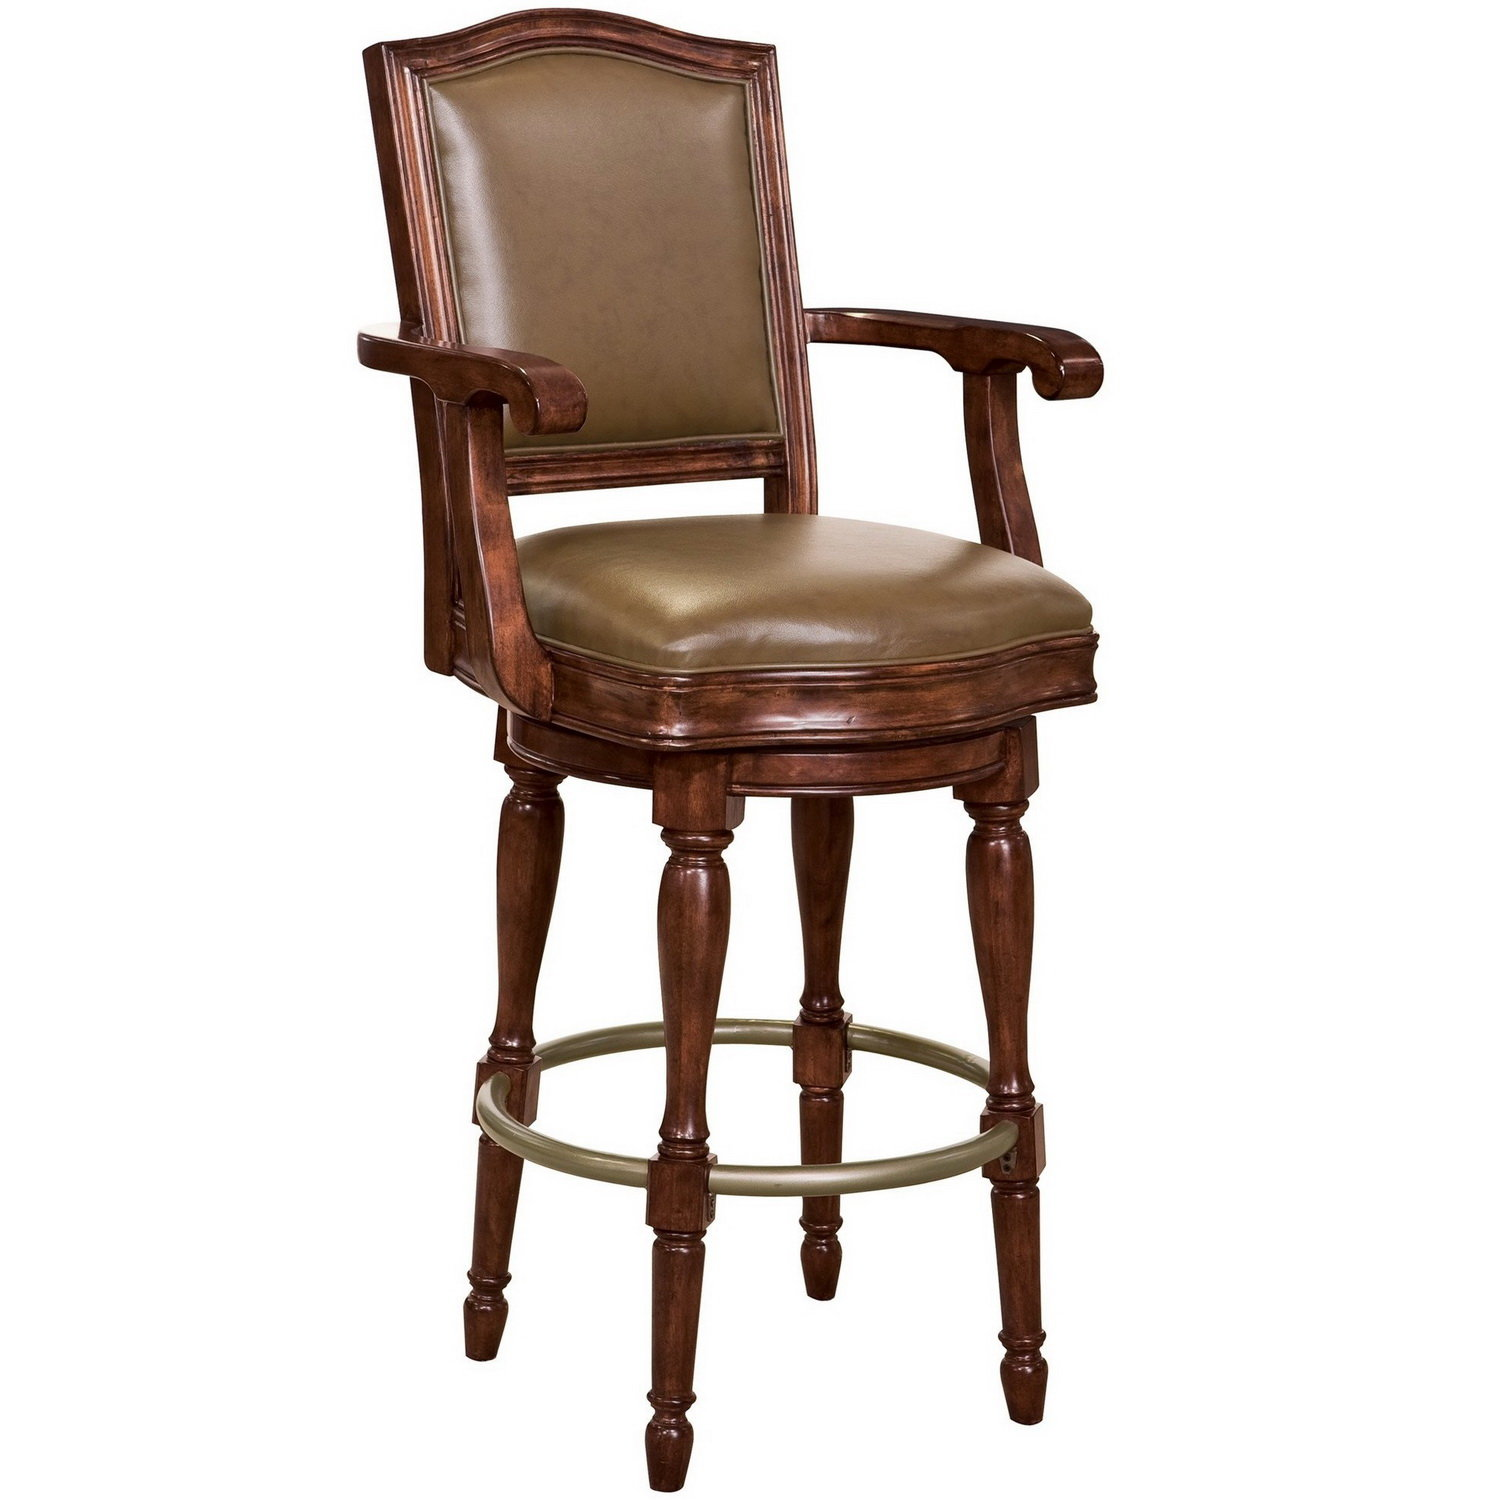 Барный стул Howard Miller Cheers Bar Stool (арт. 697-027)